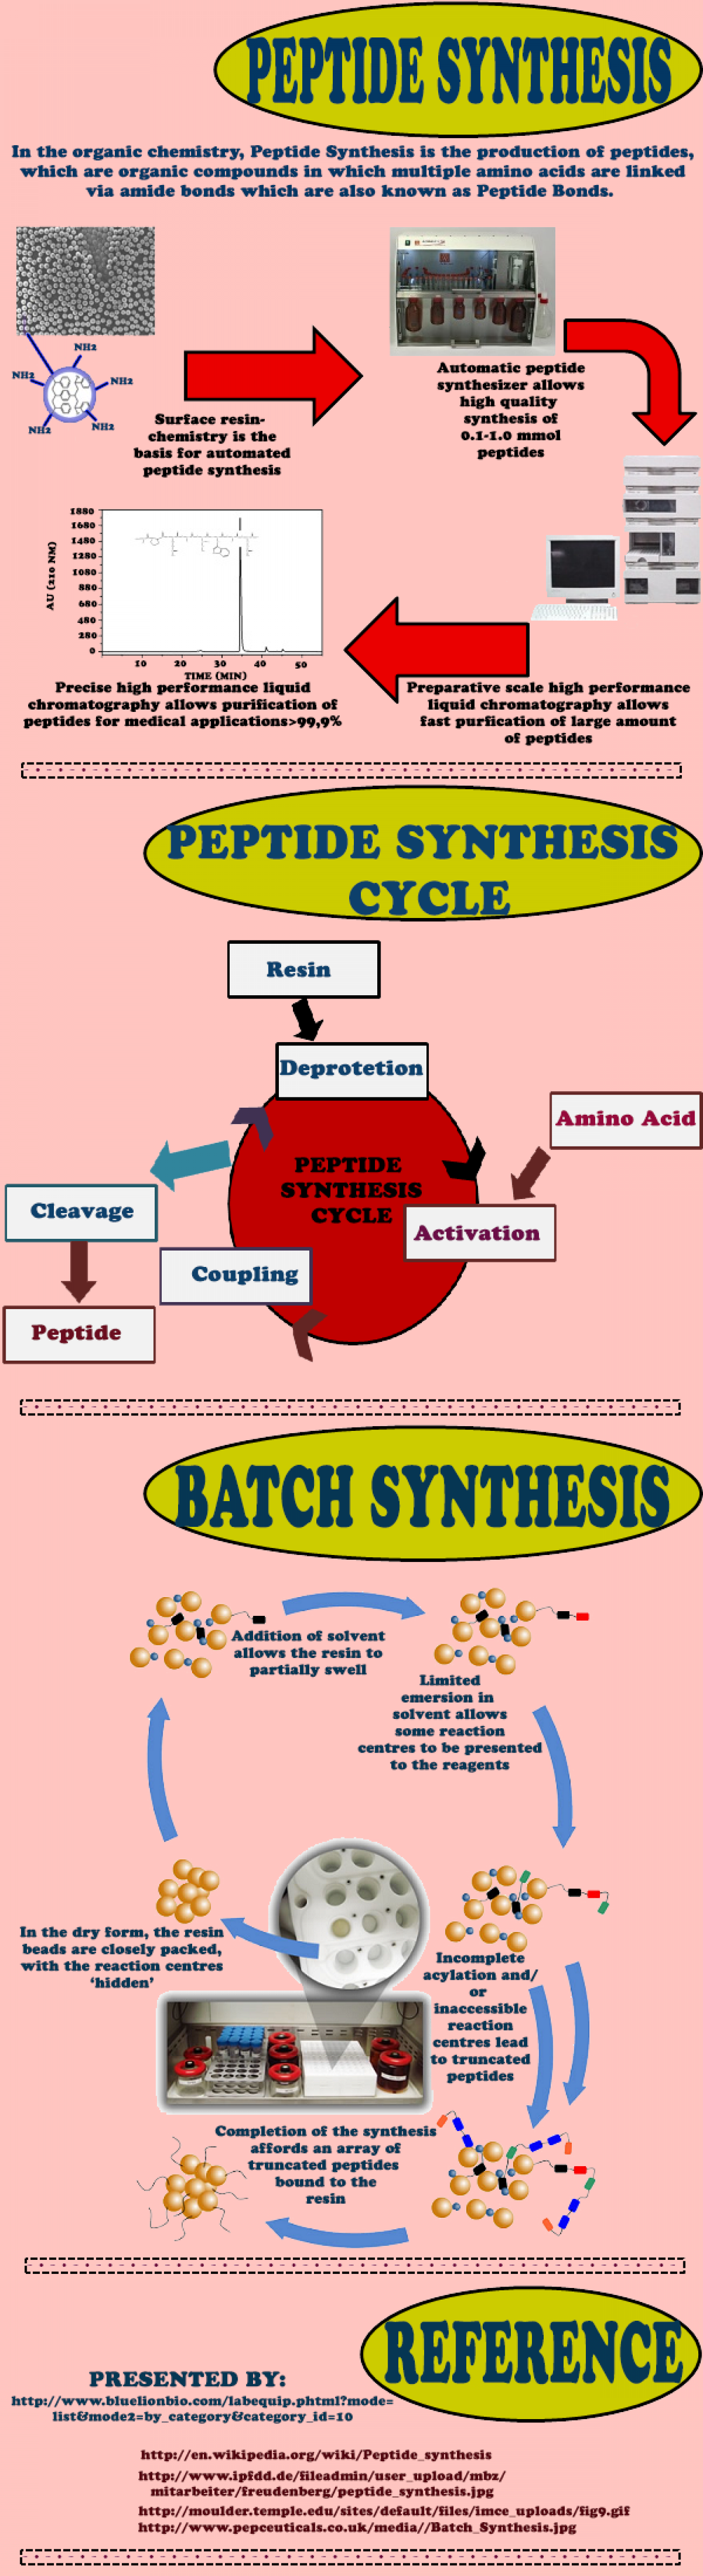 Avail analytical Biotech equipments at affordable prices! Infographic